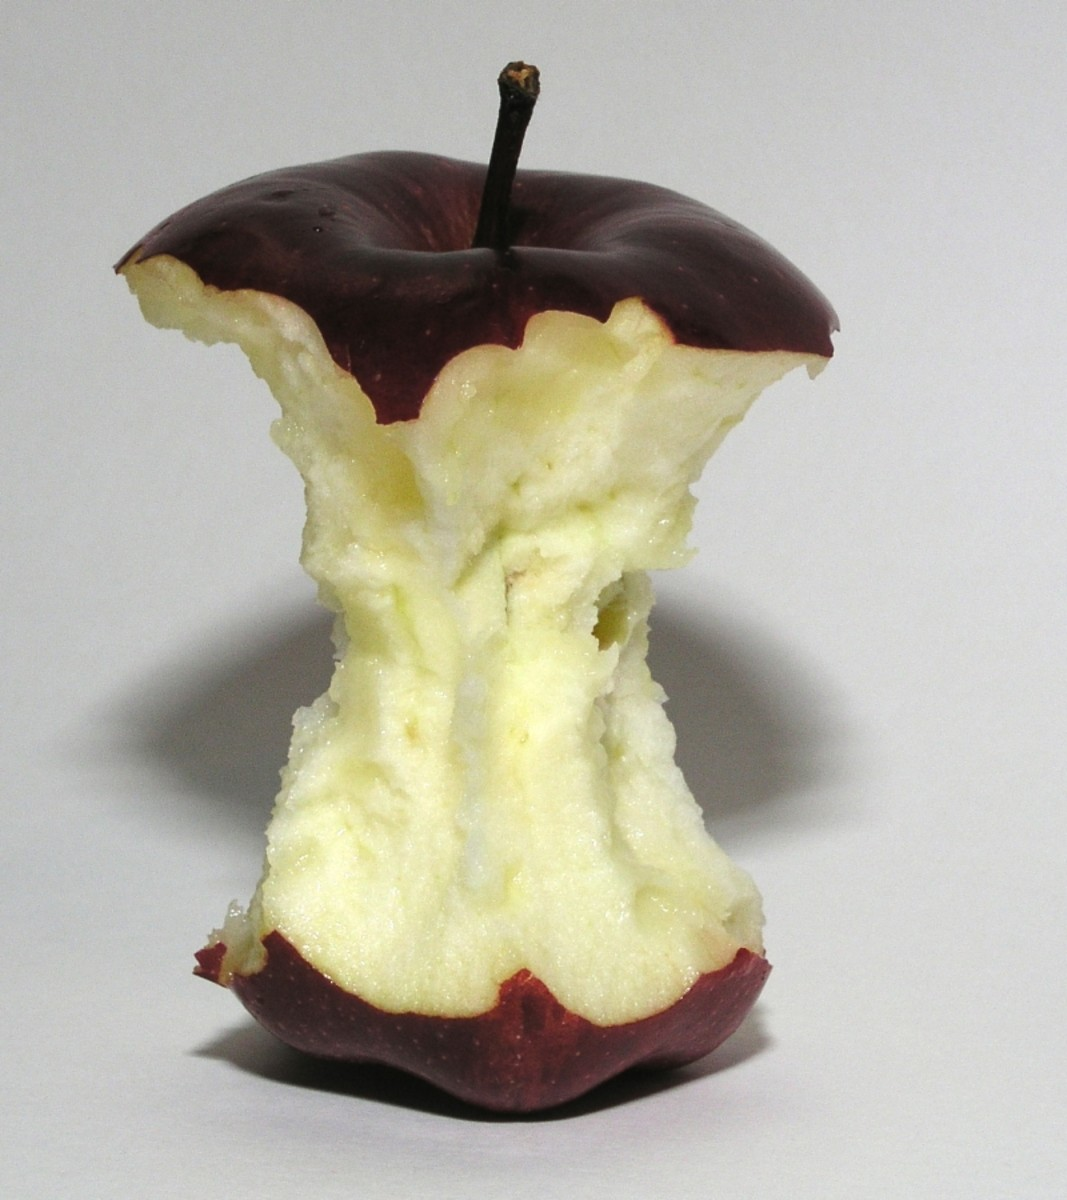 The remaining of a red apple that has been mostly eaten.